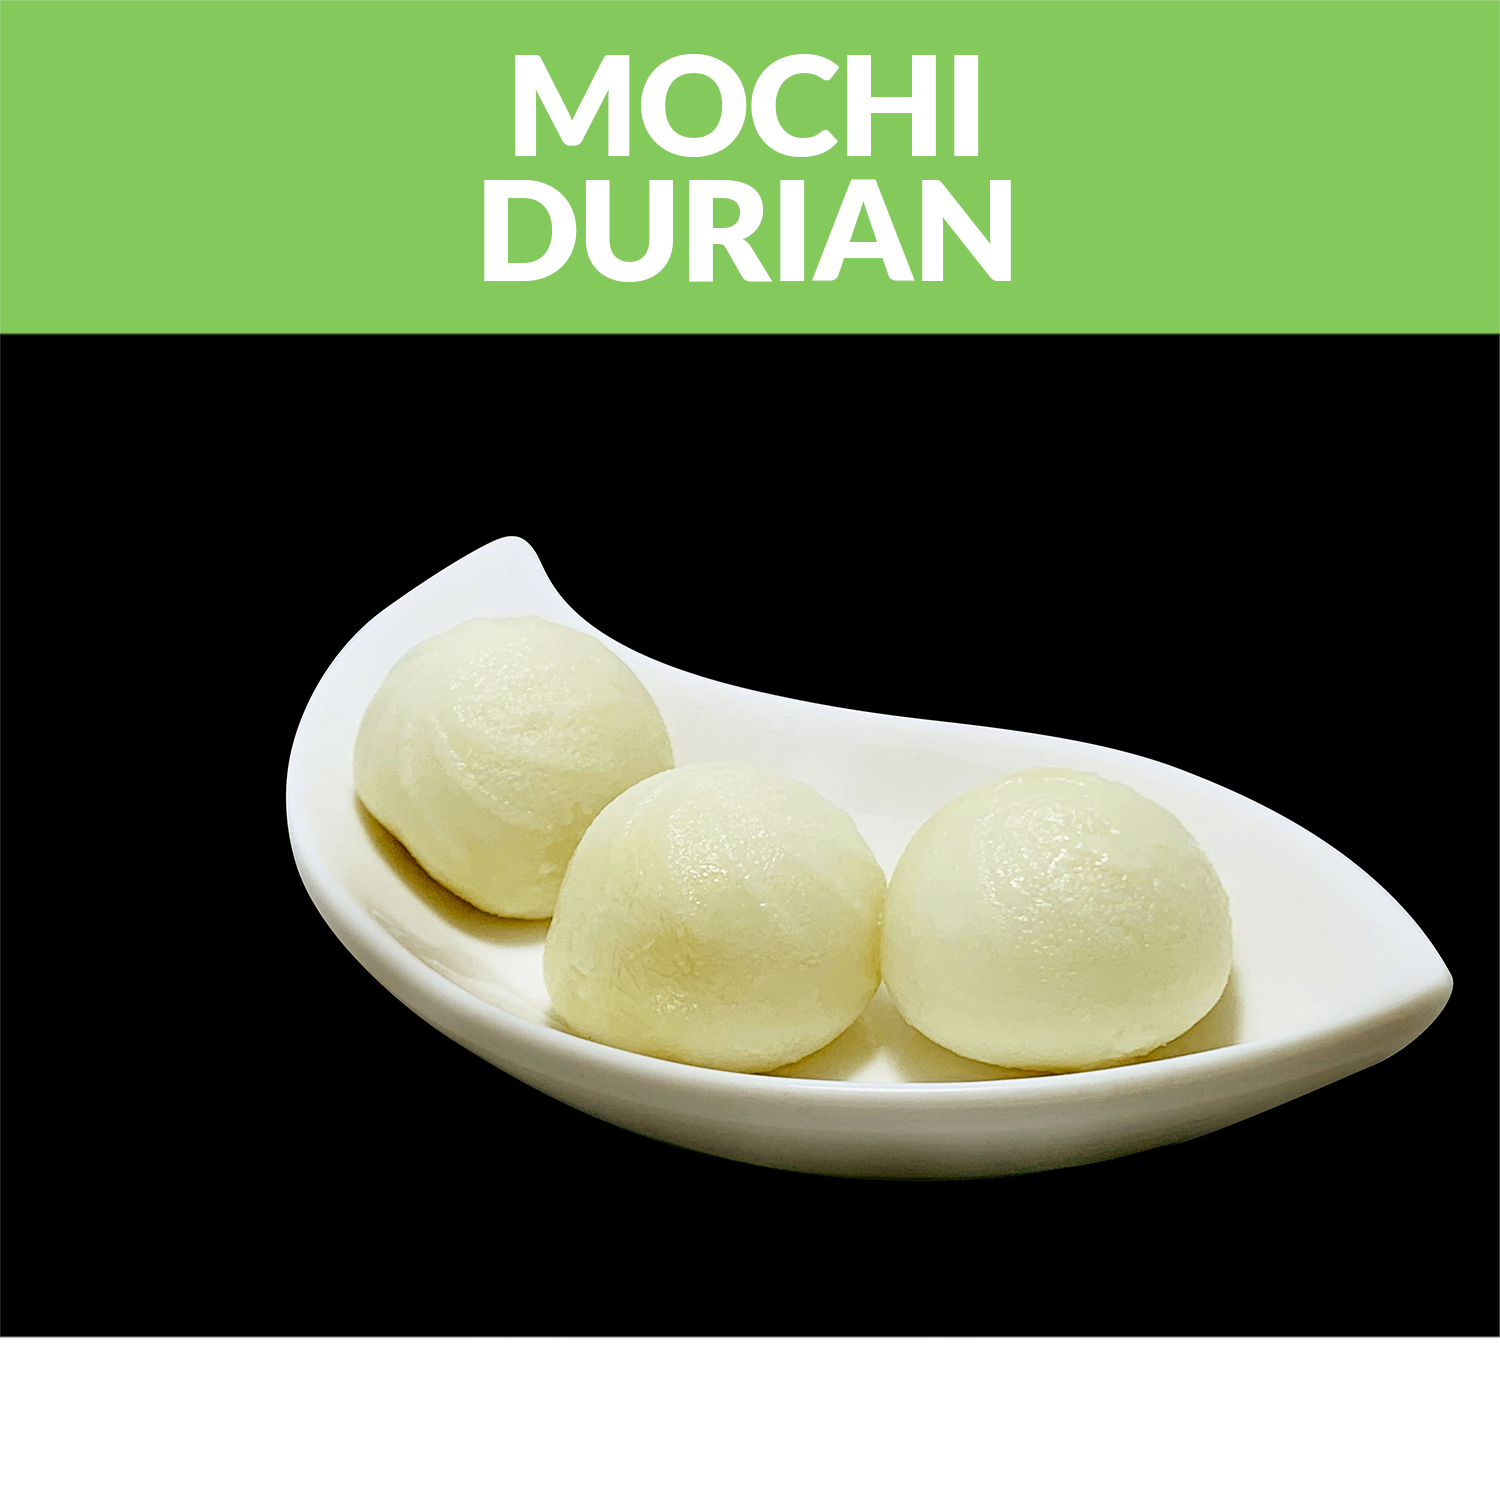 Products-Mochi-Mochi-Durian-02.png